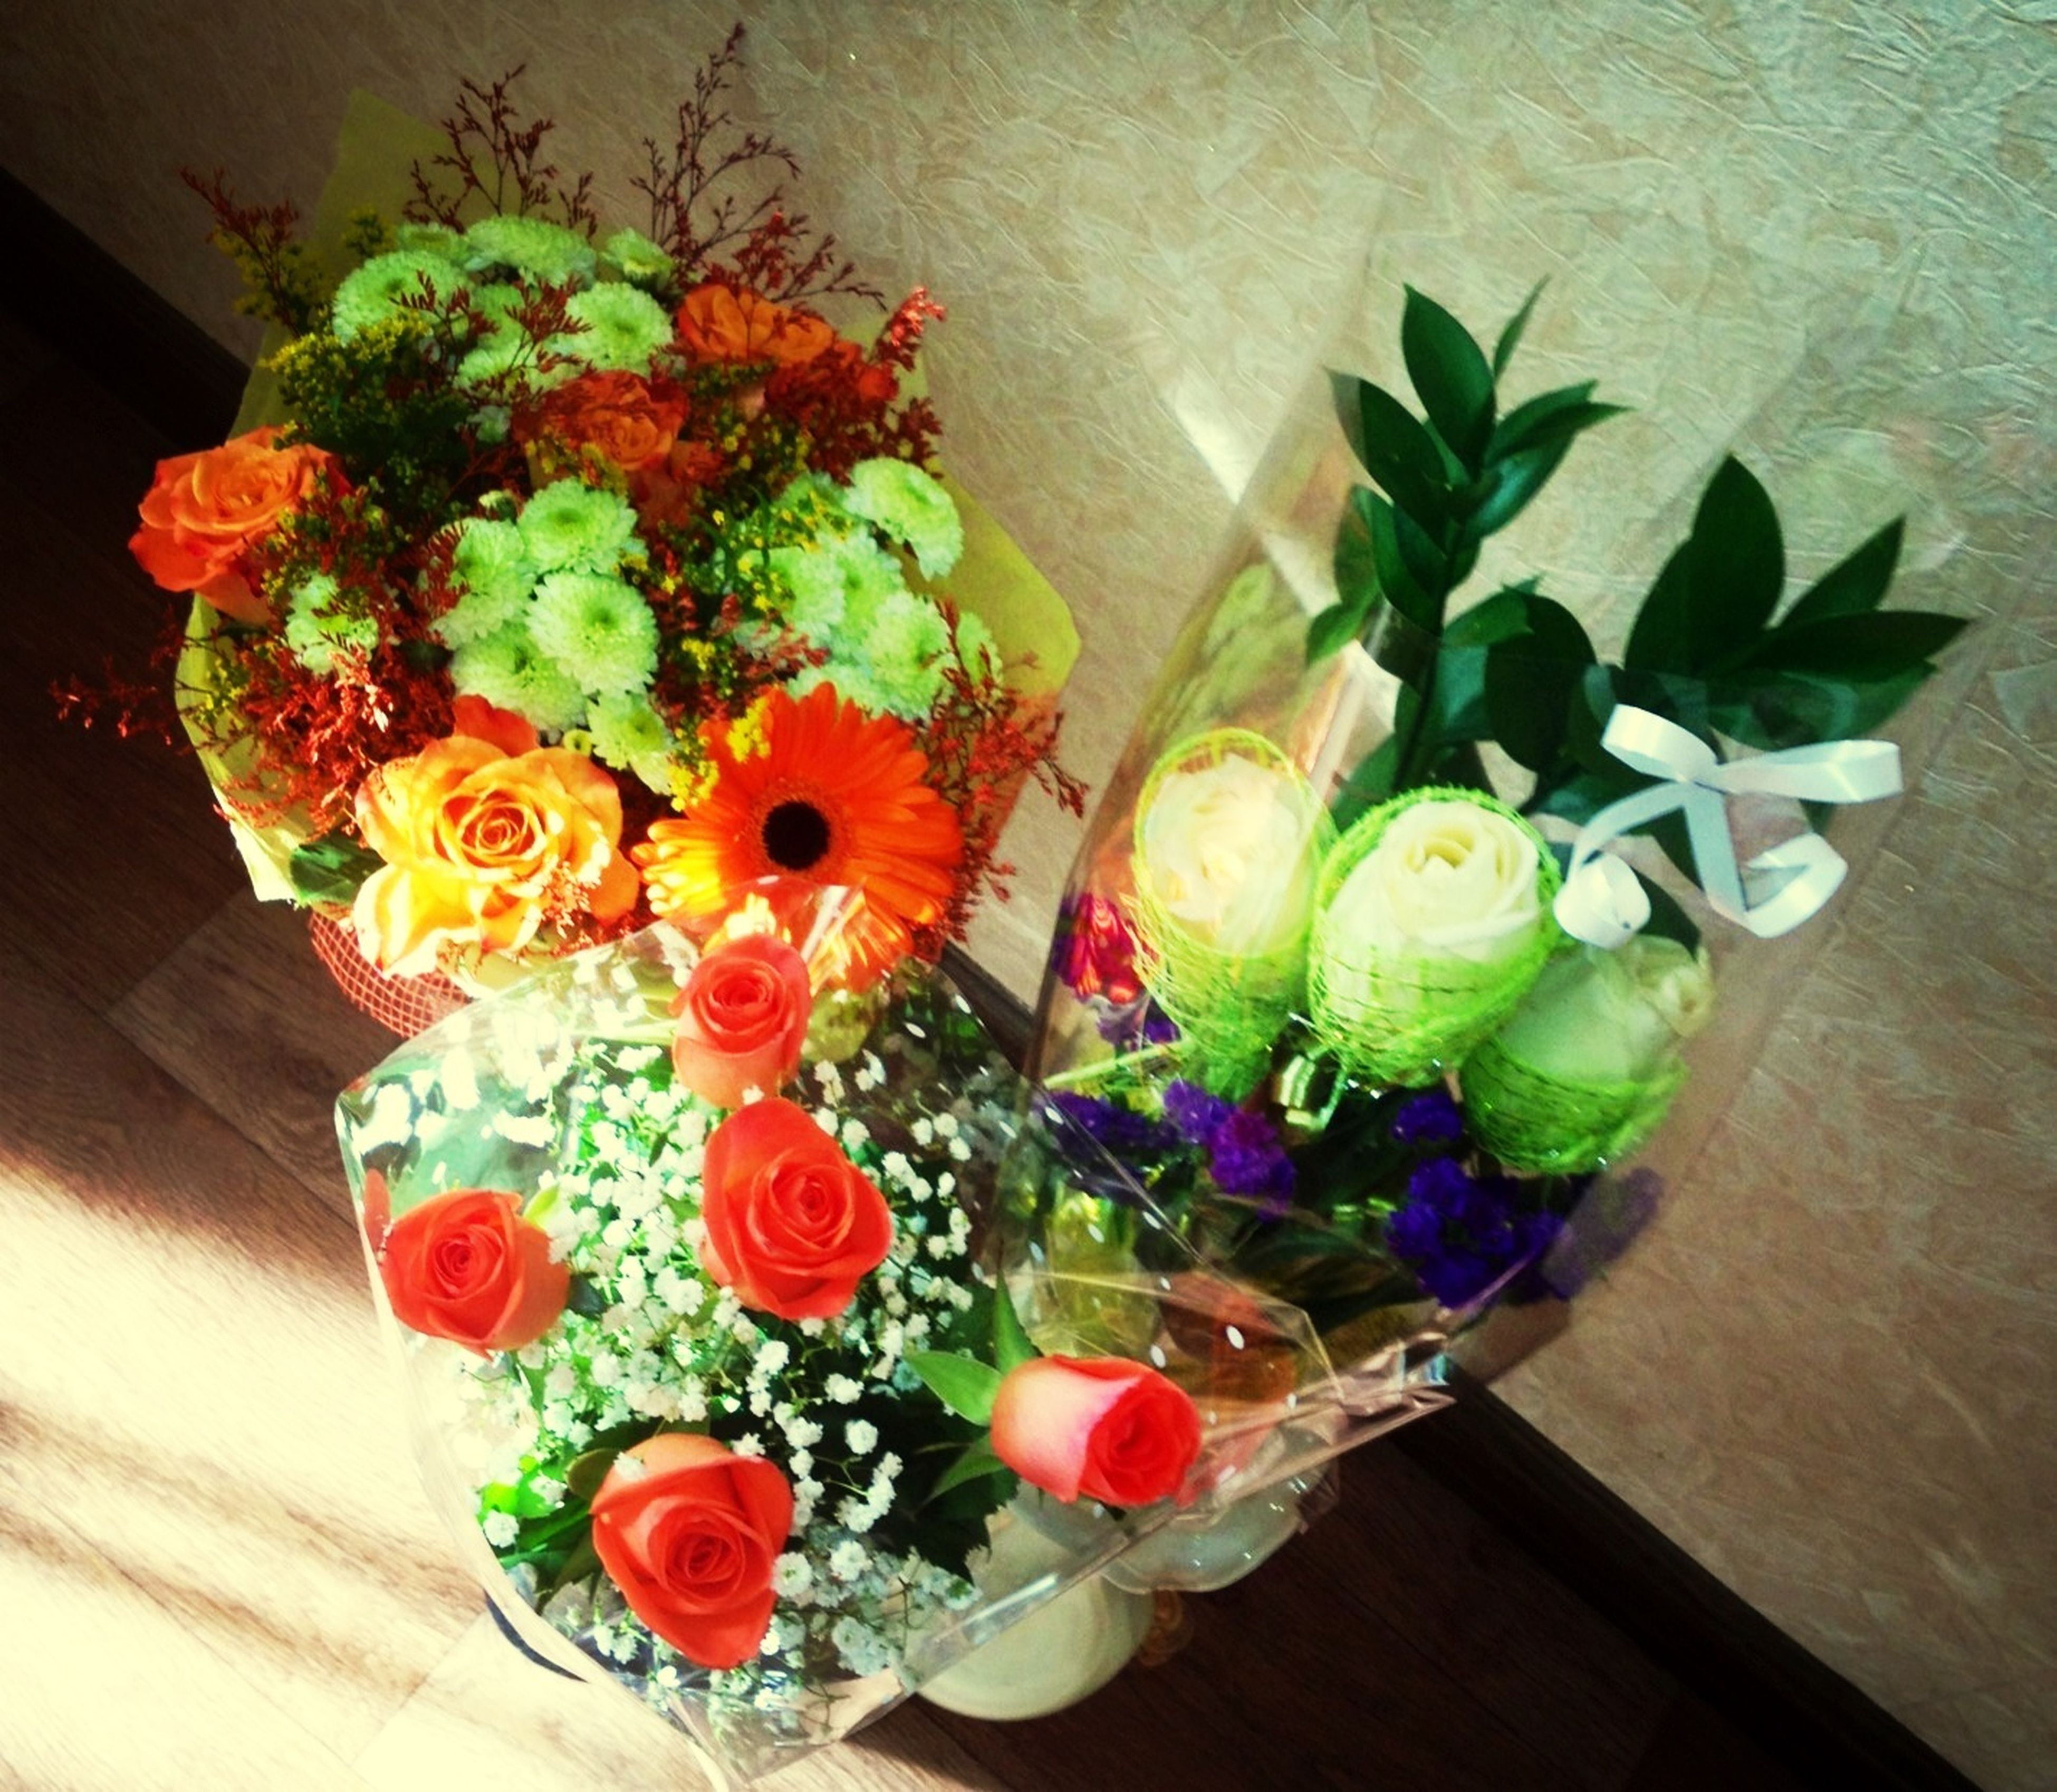 indoors, flower, table, vase, decoration, multi colored, freshness, still life, high angle view, home interior, flower arrangement, variation, bouquet, fragility, potted plant, wall - building feature, wood - material, no people, bunch of flowers, petal